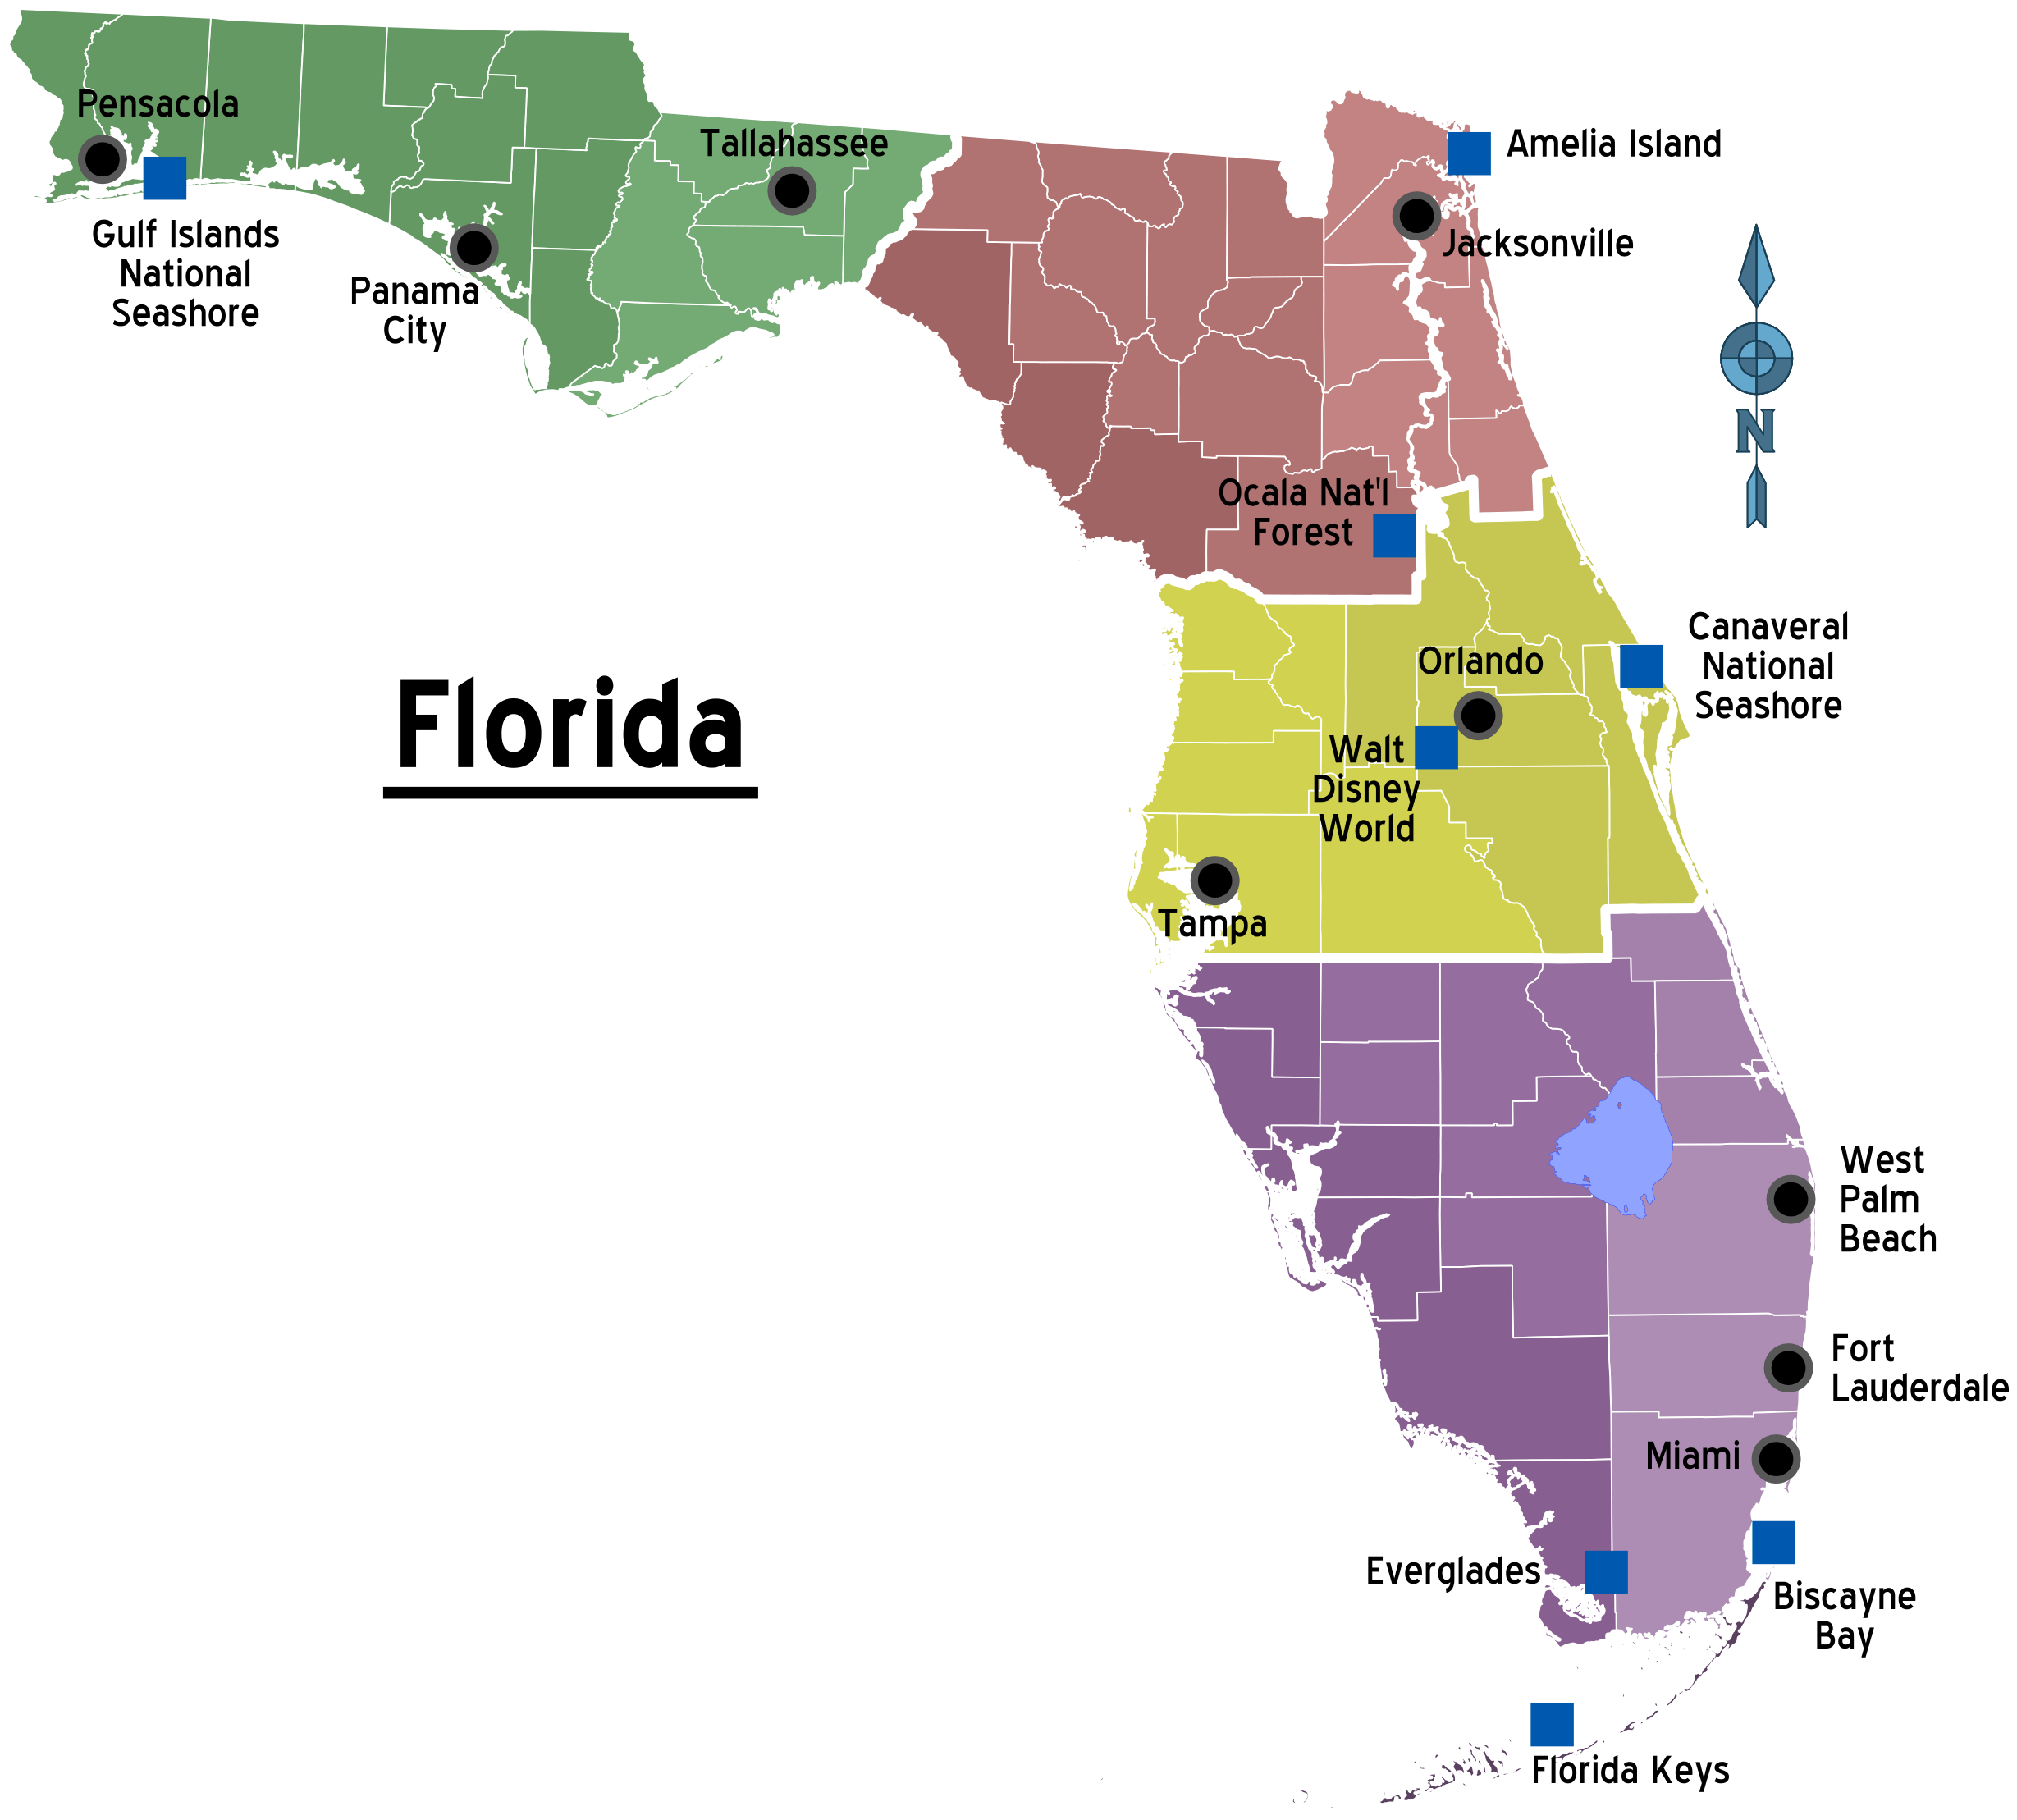 Florida Regions Map With Cities • Mapsof.net